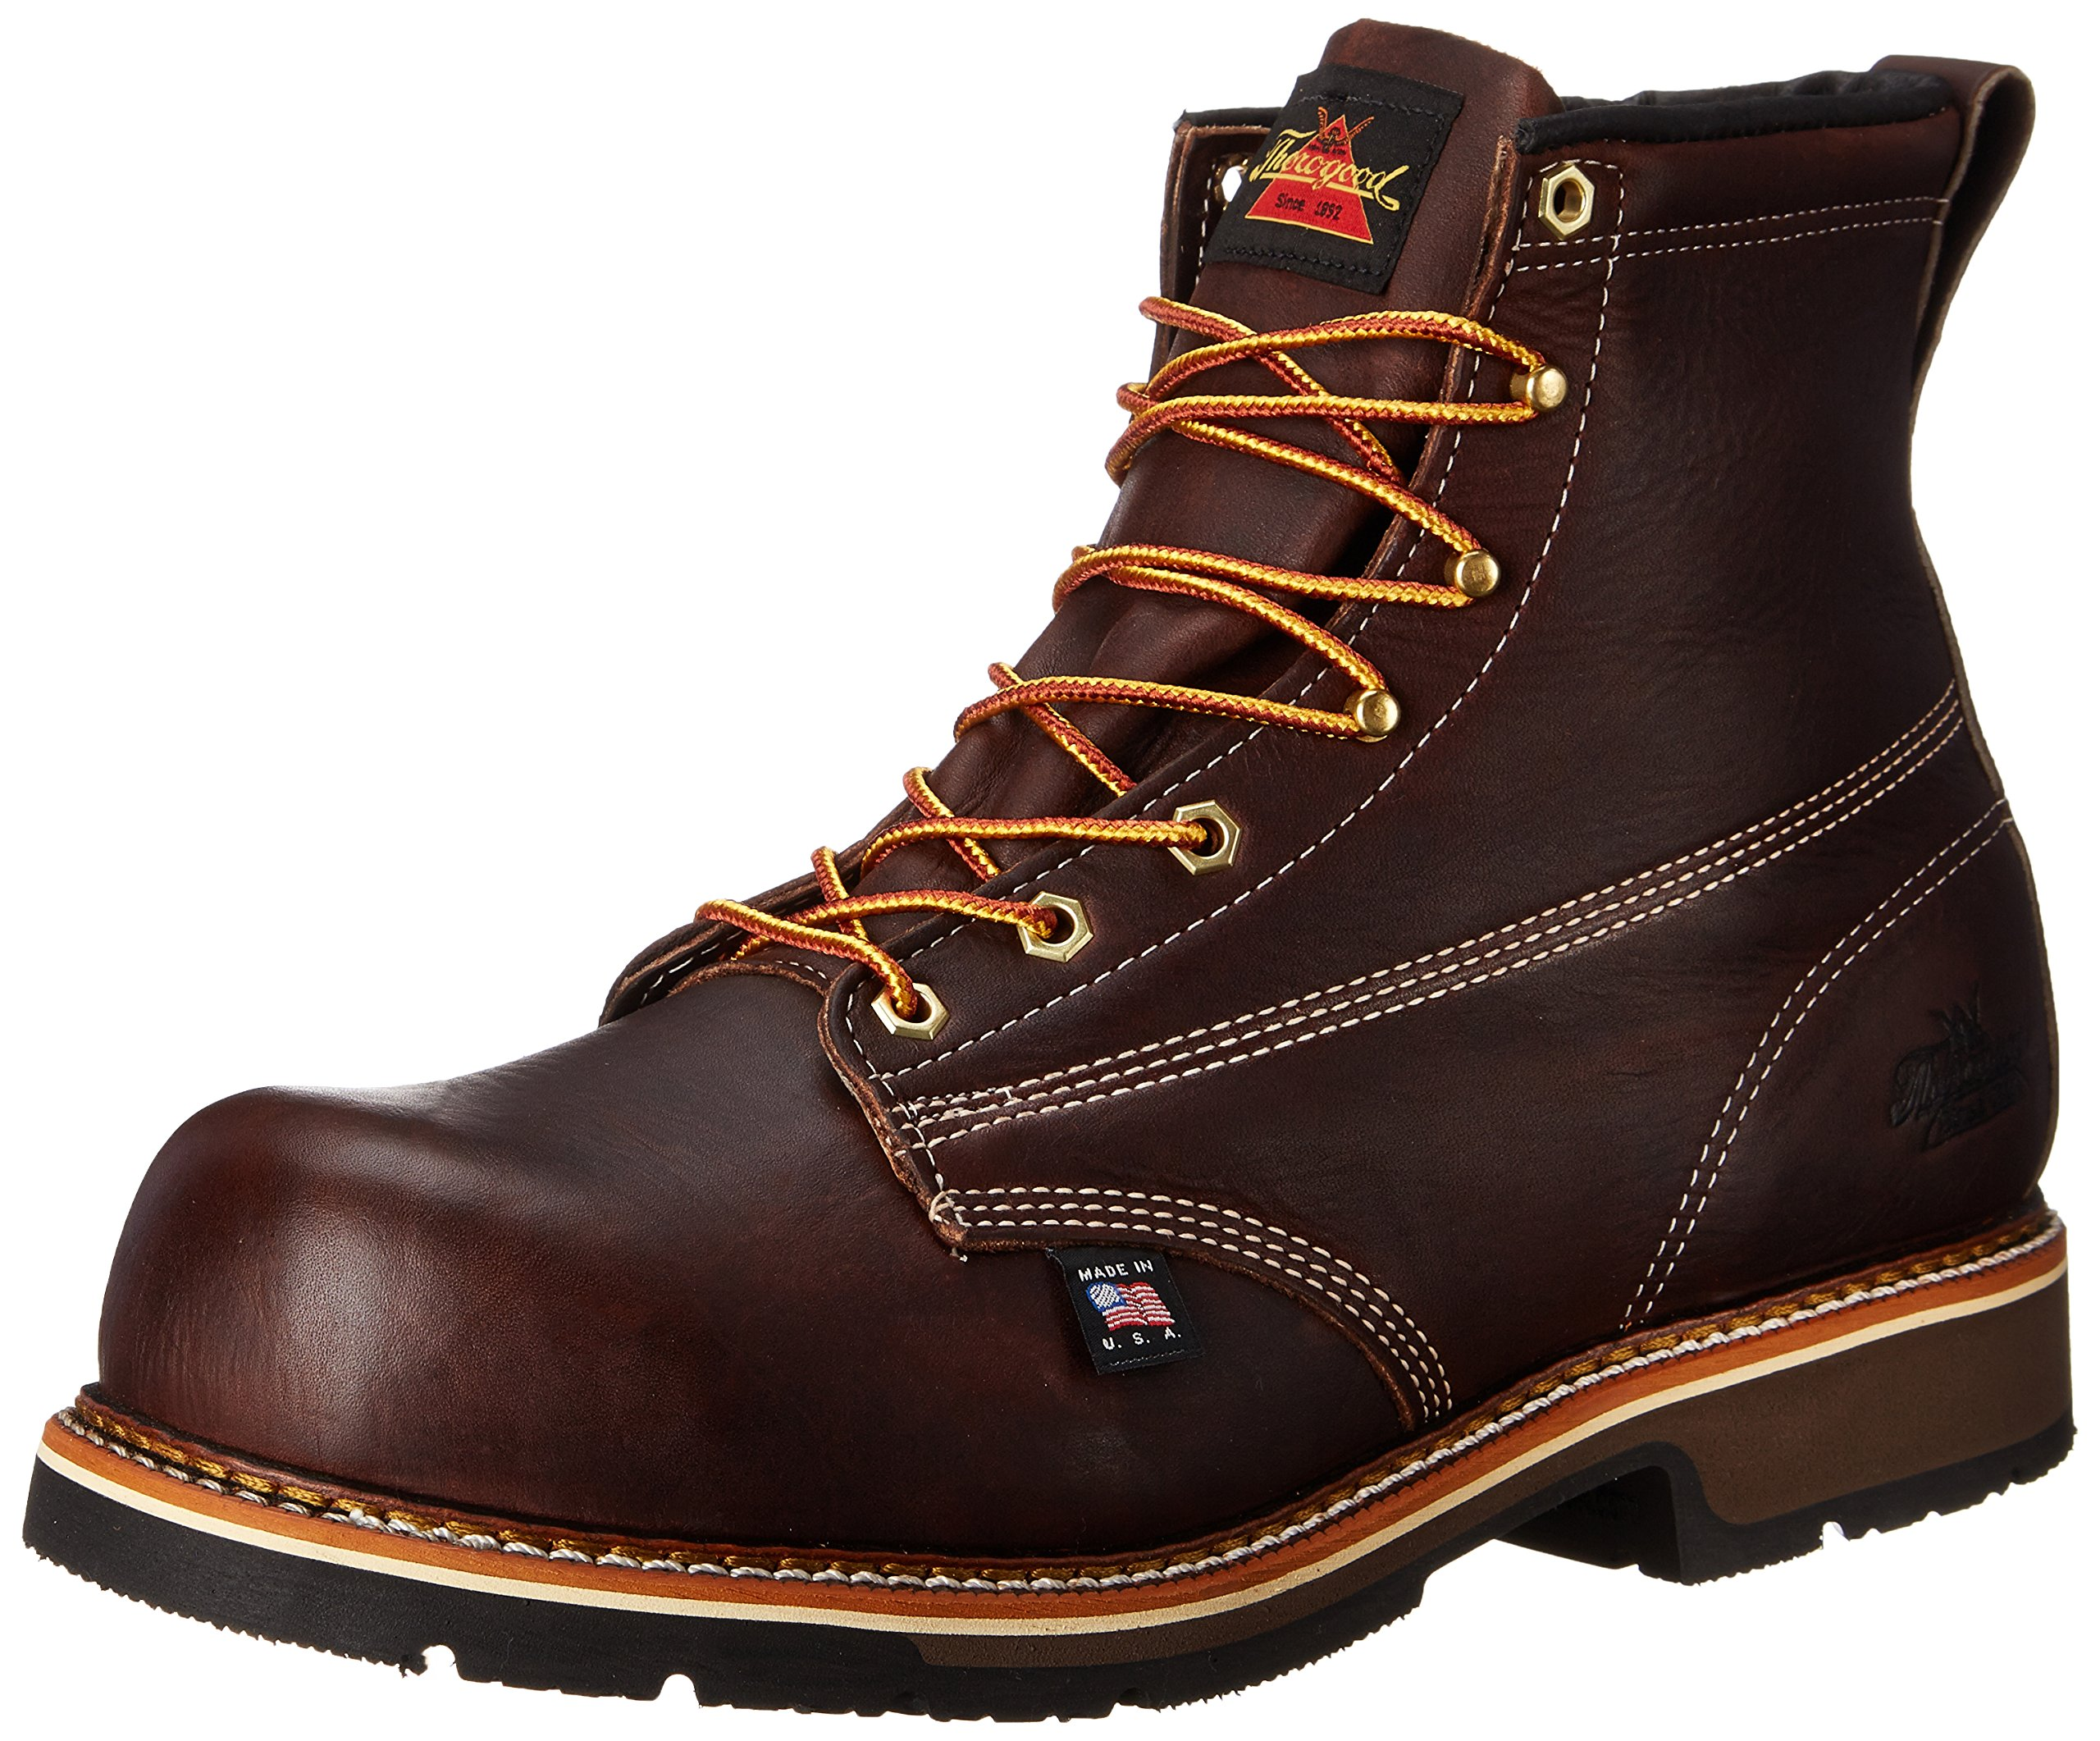 Thorogood Men's American Heritage 6 Inch Safety Toe Lace-up Boot,Brown,11 D US